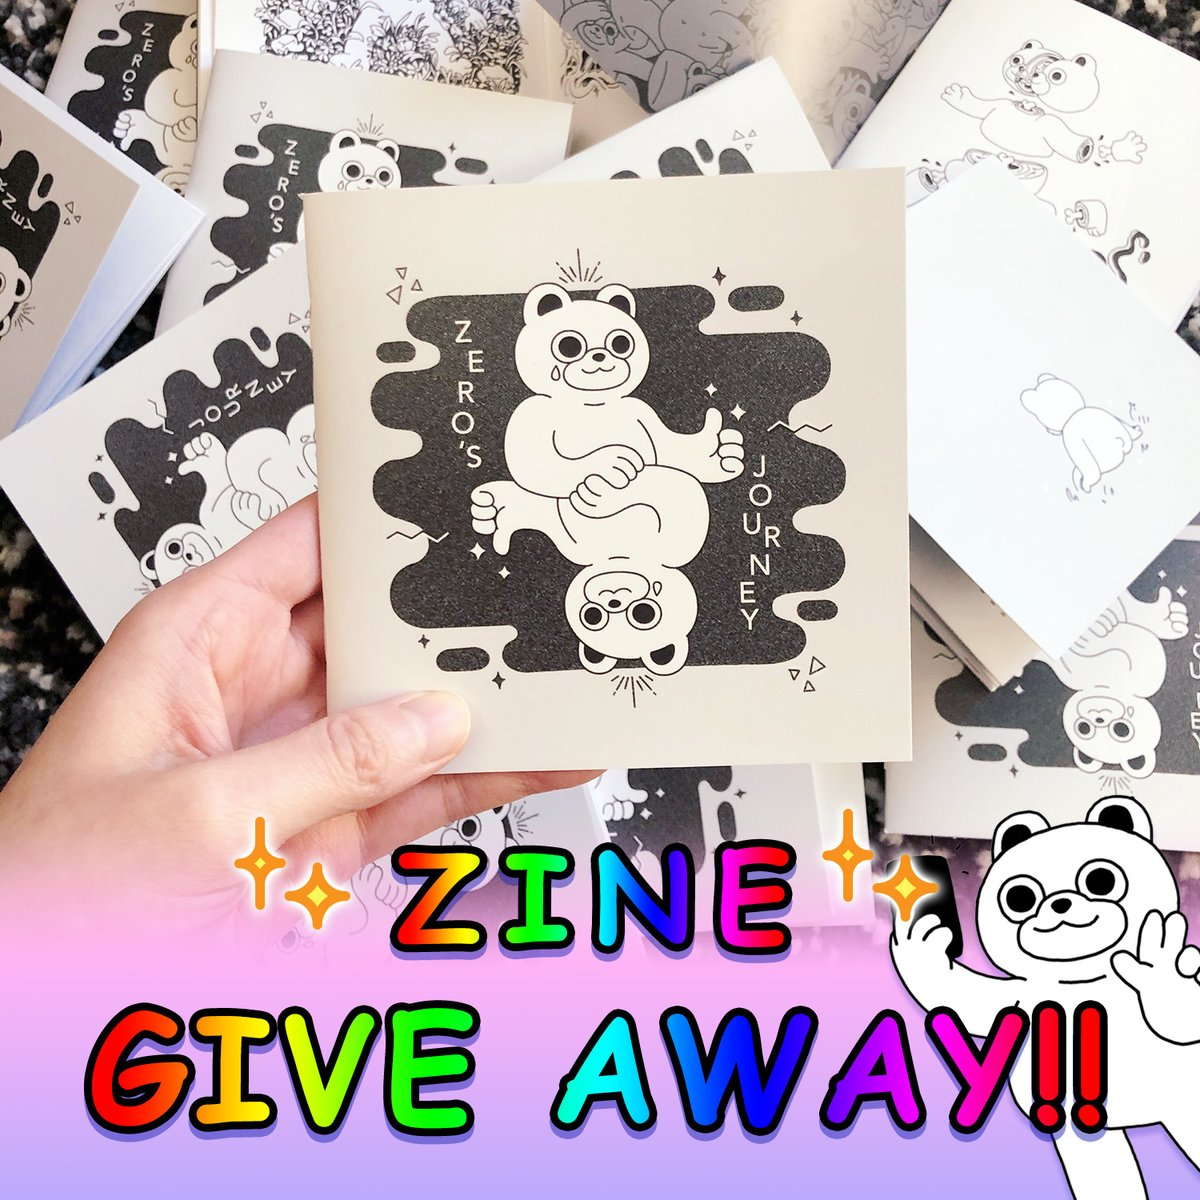 GIVE AWAY  Zero's Journey: collection of 31 drawings from #inktober2019!    TO ENTER  RT this post   1 winner will be chosen @ random on Saturday March 7 Bonus prizes if you're a follower  will be for sale later this month @ http://rudetude.storeenvy.compic.twitter.com/hHenti2R19